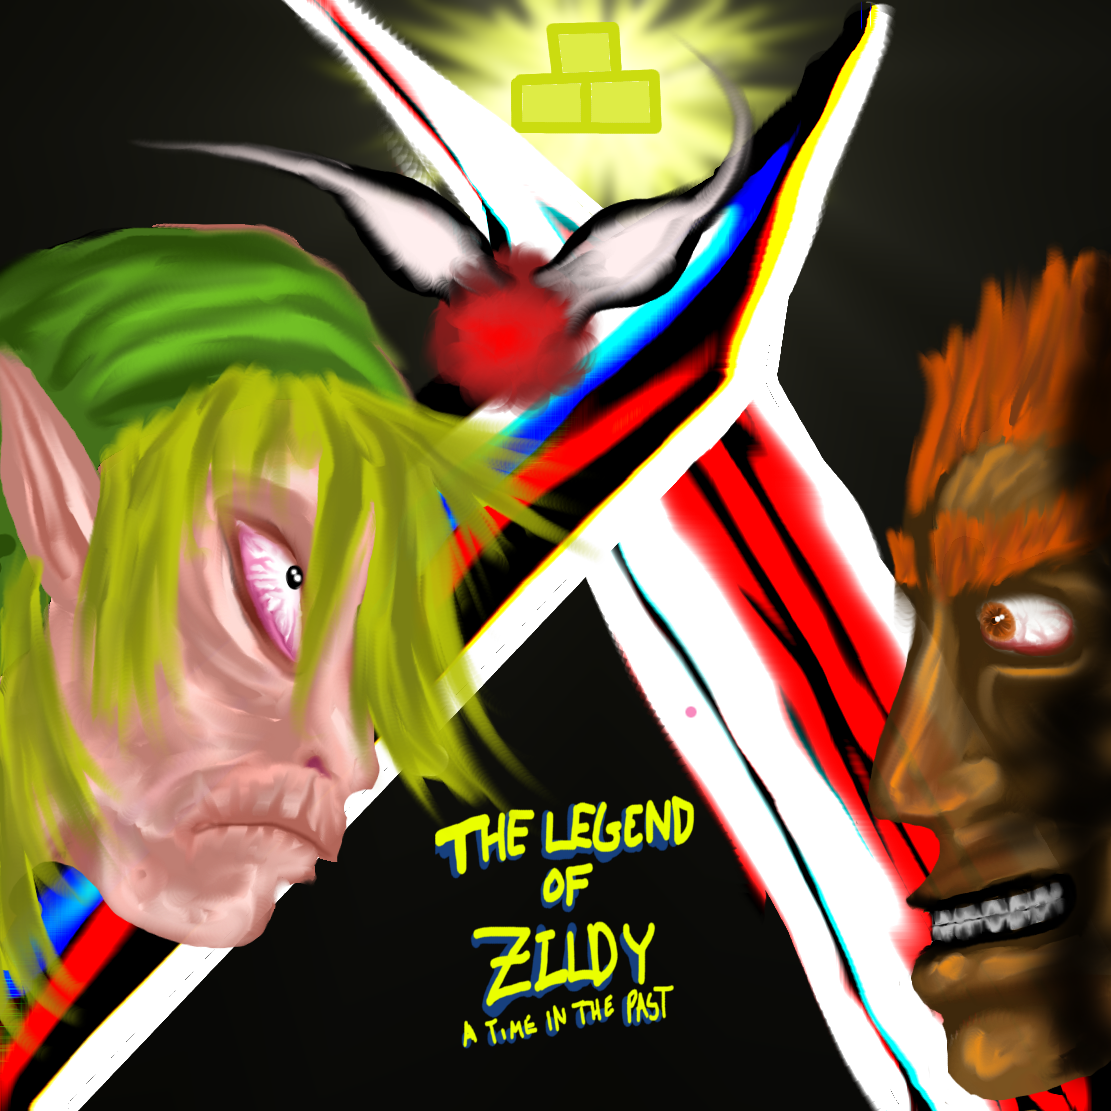 LEGEN OF ZILDY A TIME IN PAST